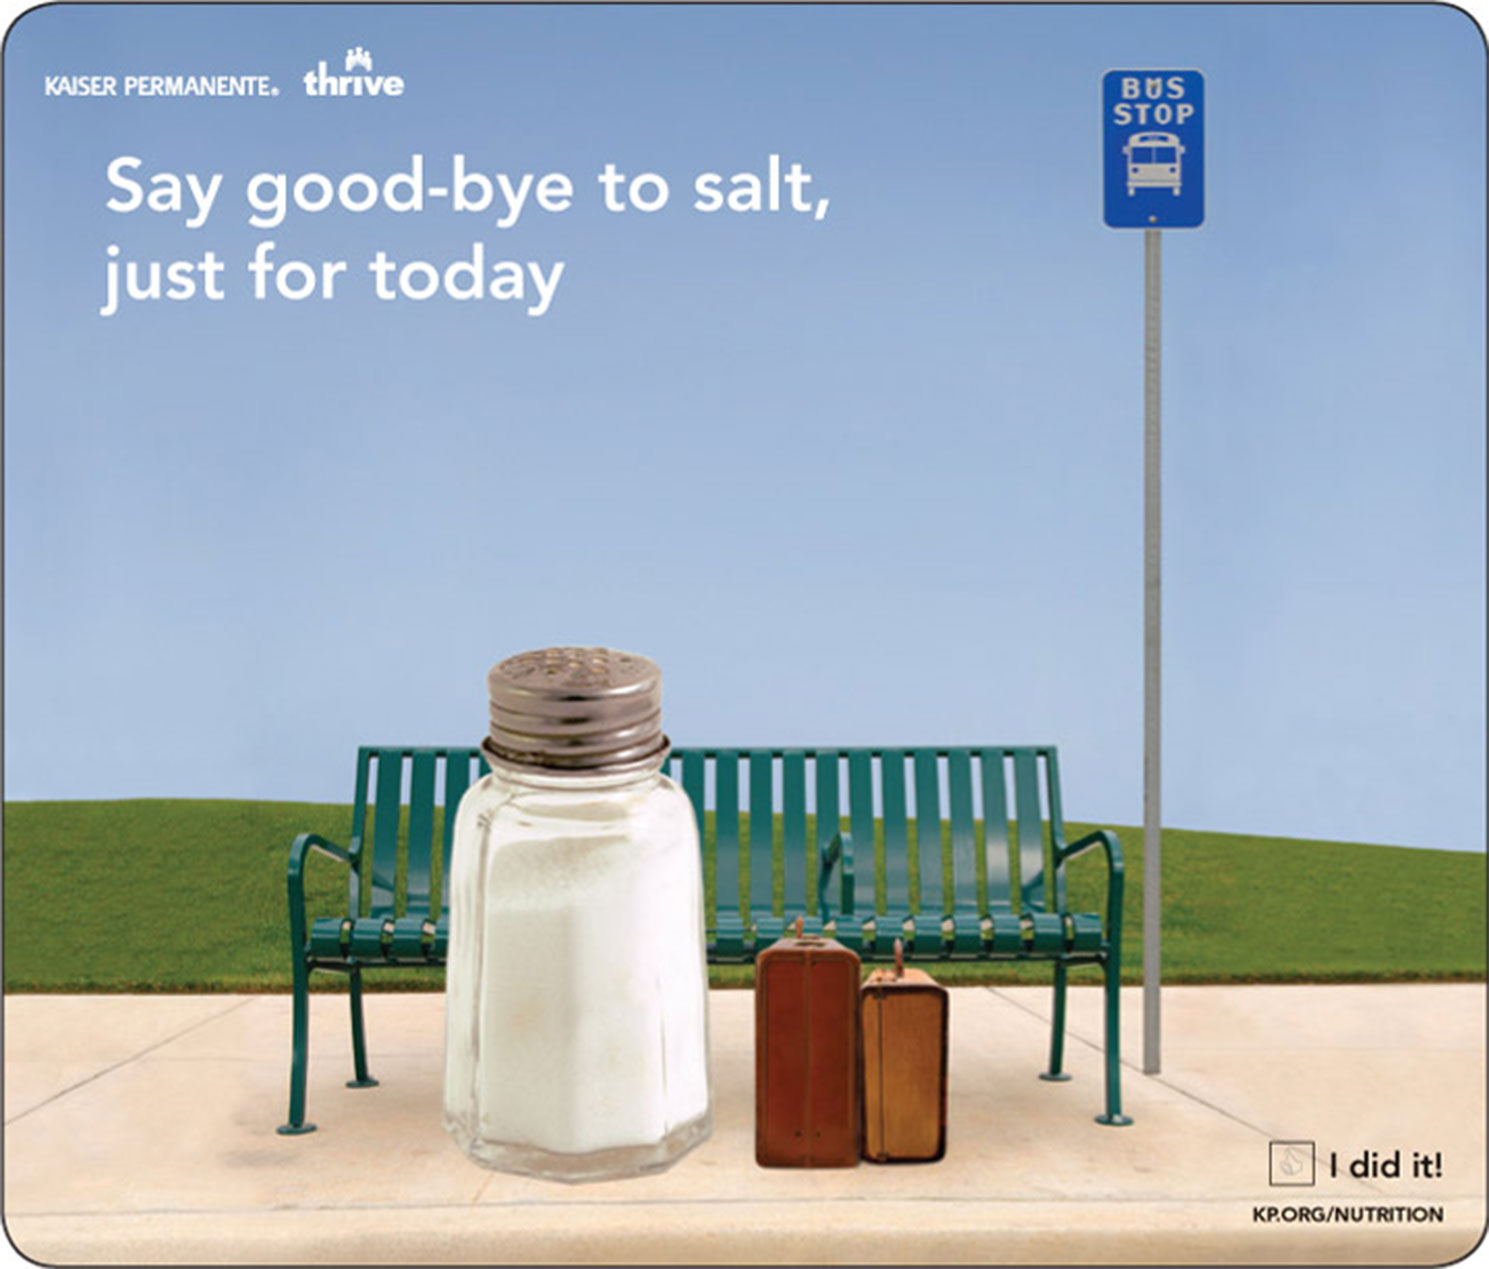 21 Ways - Say good-bye to salt, just for today